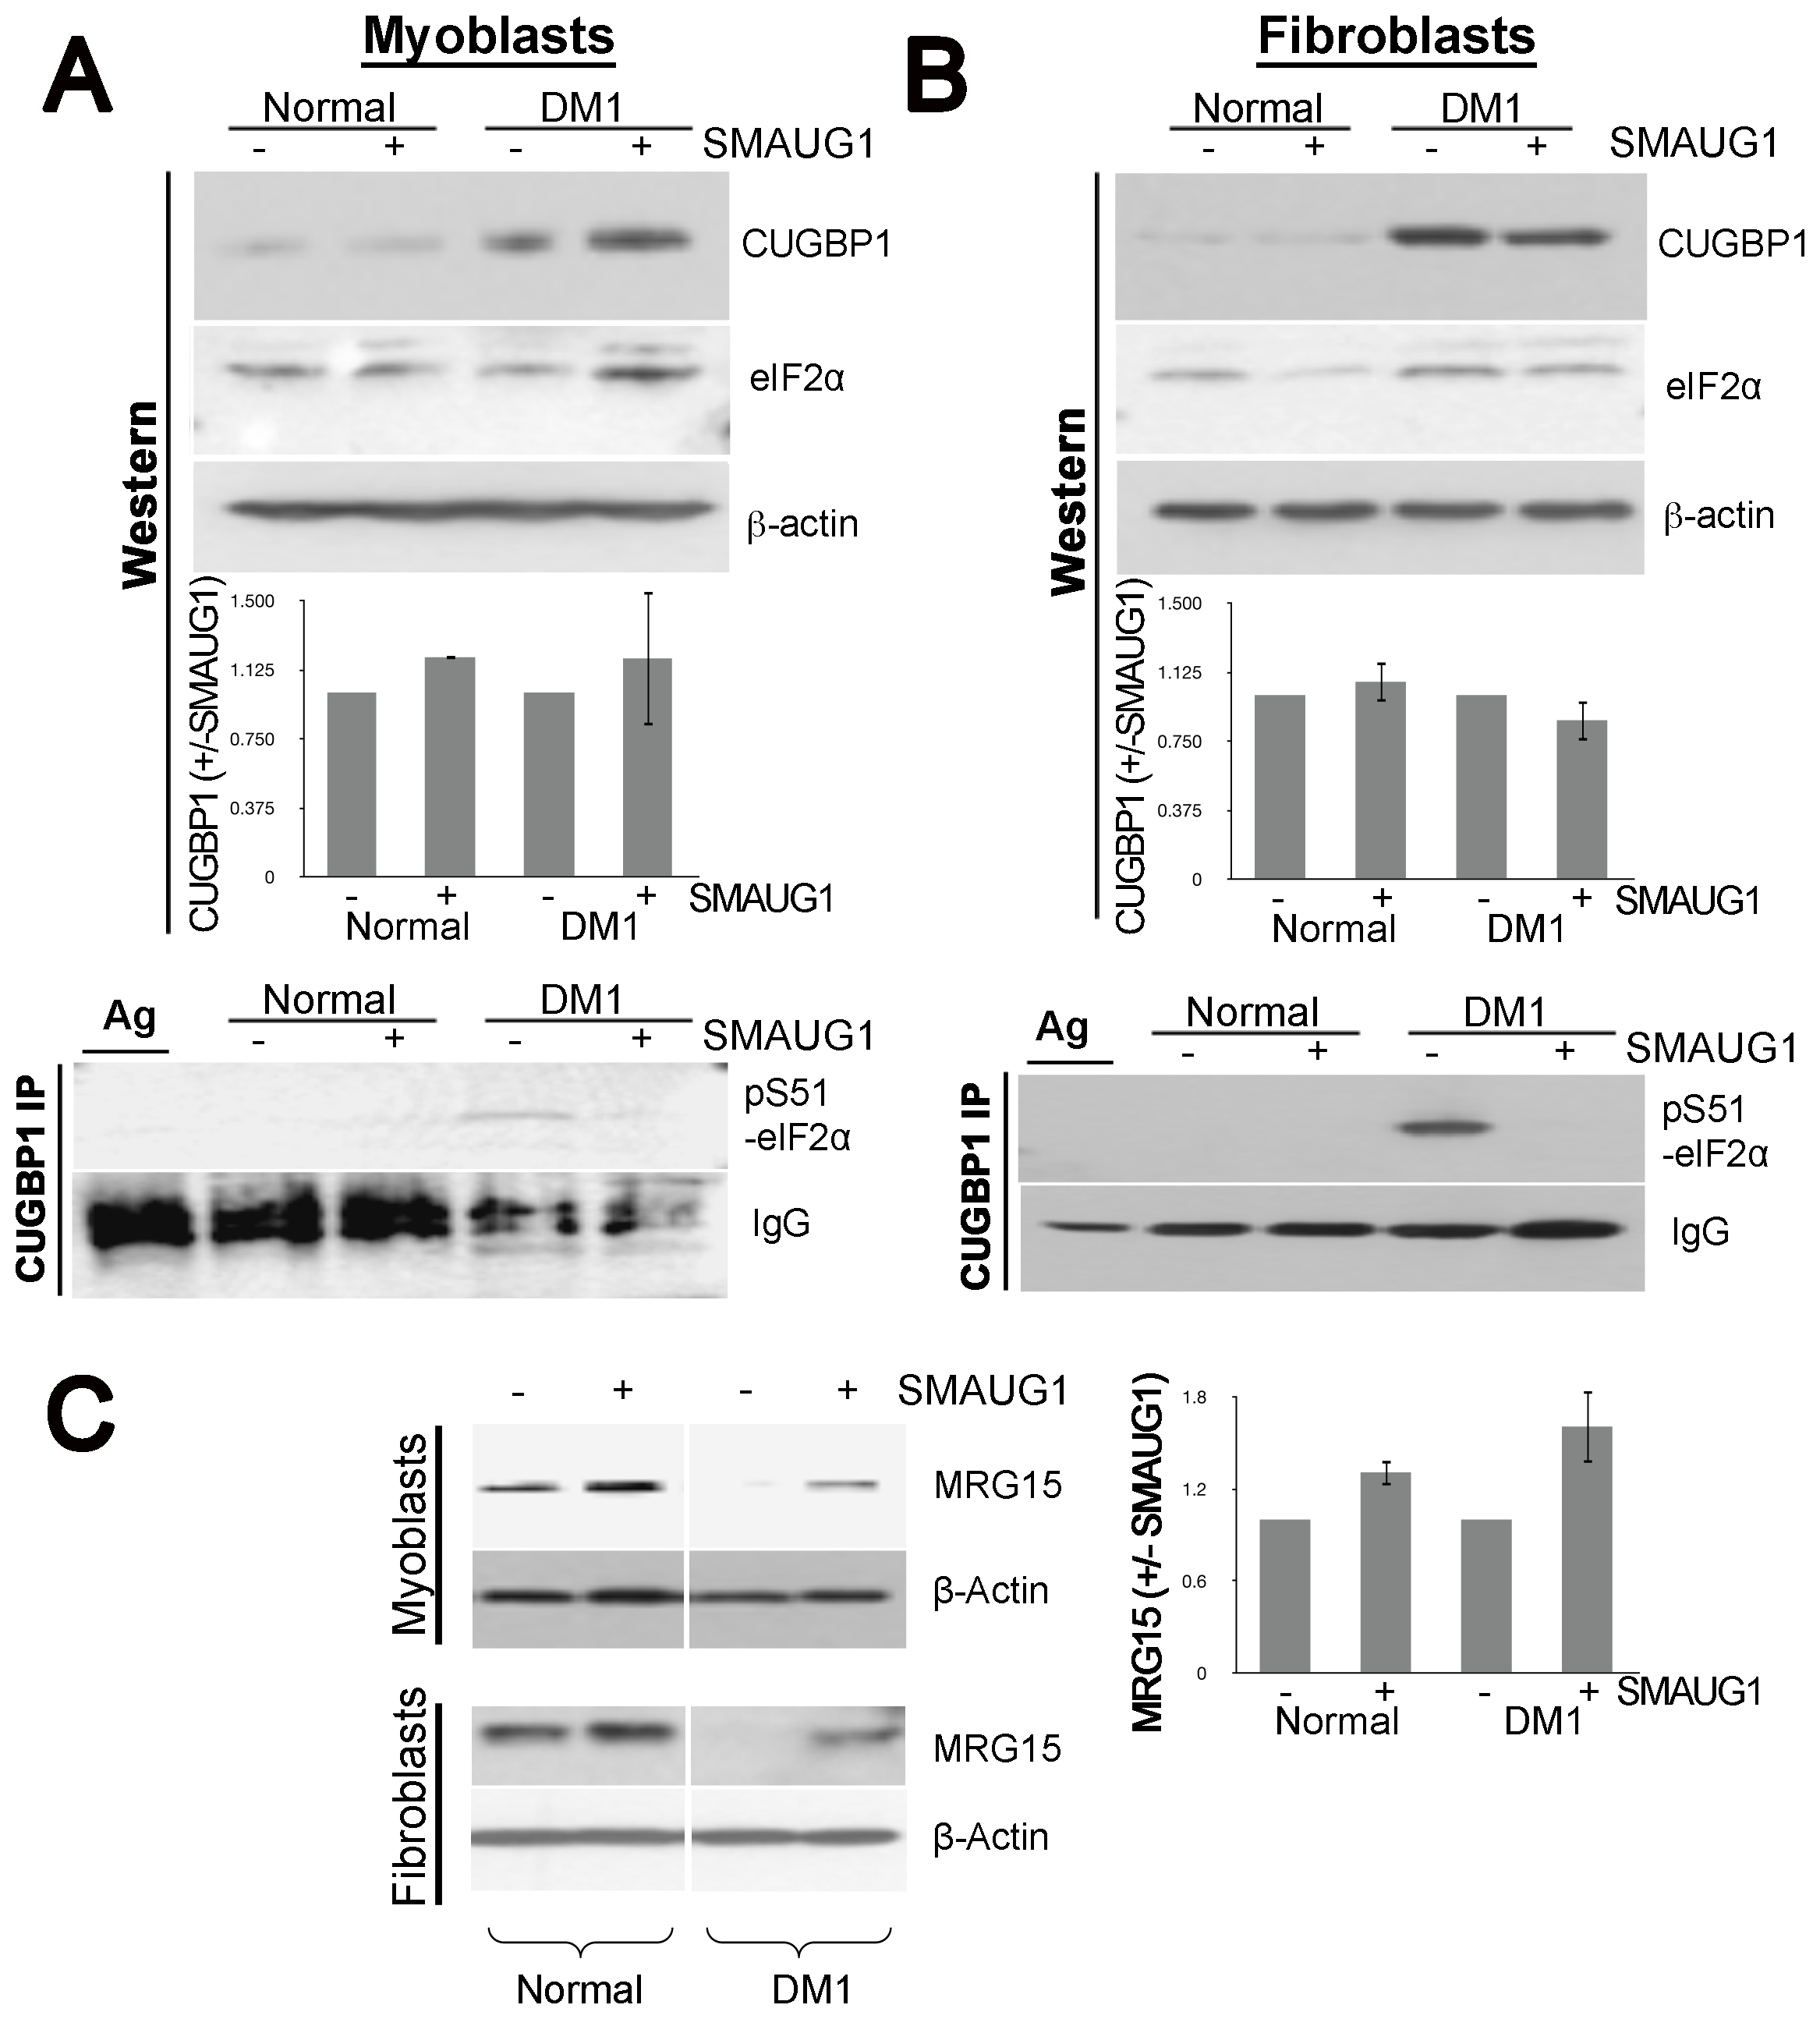 SMAUG1 reduces inactive CUGBP1/pS51-eIF2α translational complexes and recuperates normal levels of MRG15 protein in DM1 myoblasts and fibroblasts.